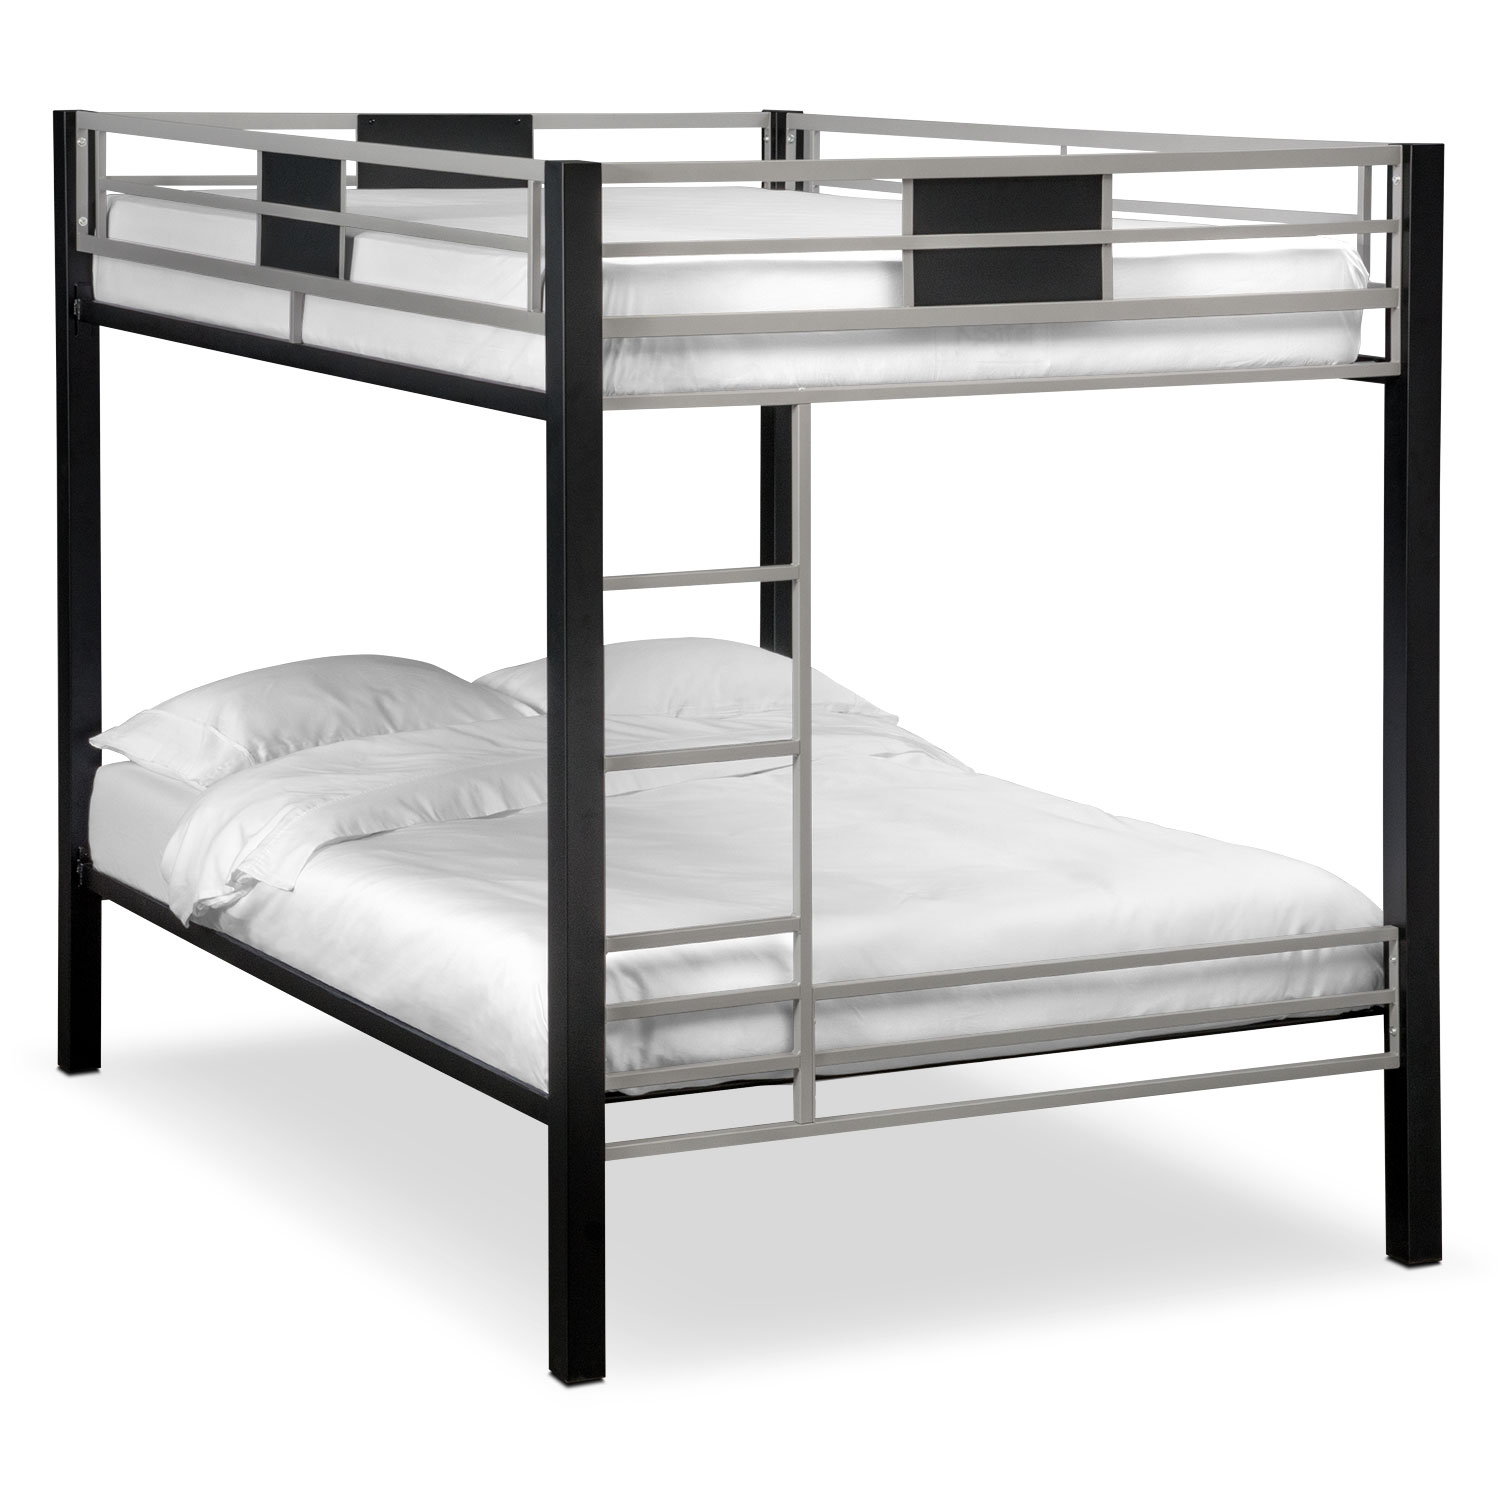 full beds bed austin metal industrial bunk twin size inspired